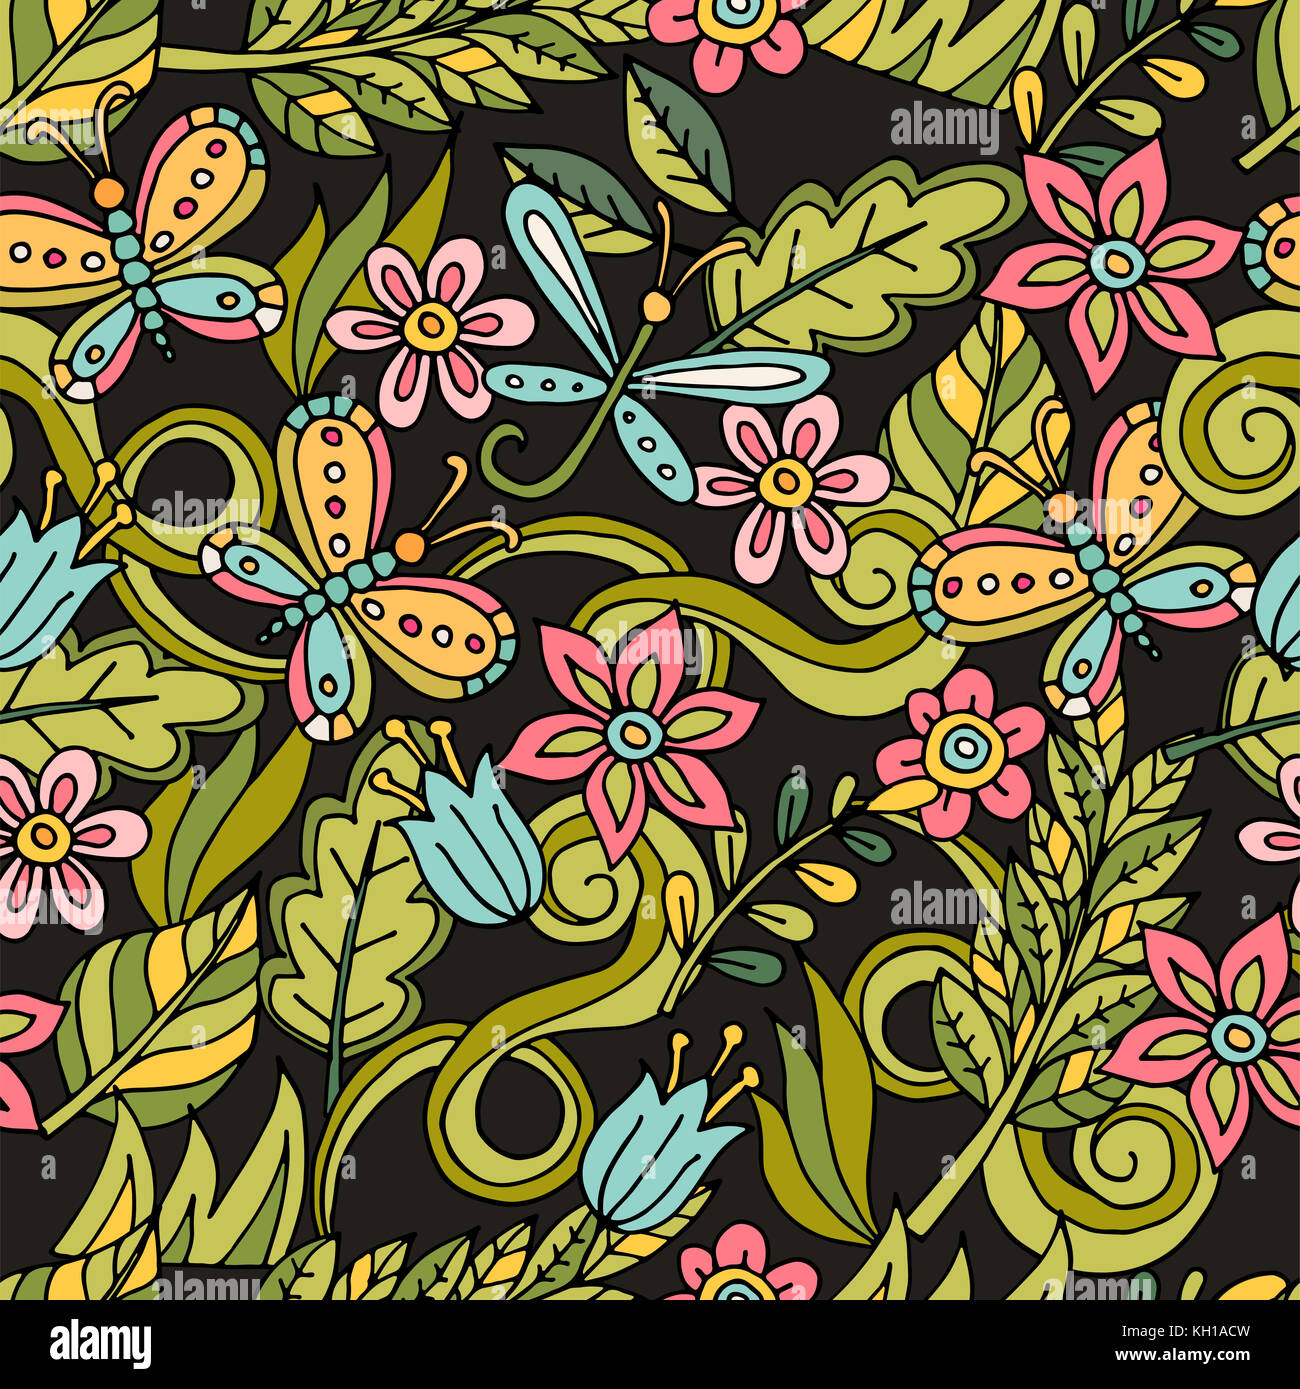 Colorful seamless floral pattern with stylized butterfly and dragonfly. Stock Photo